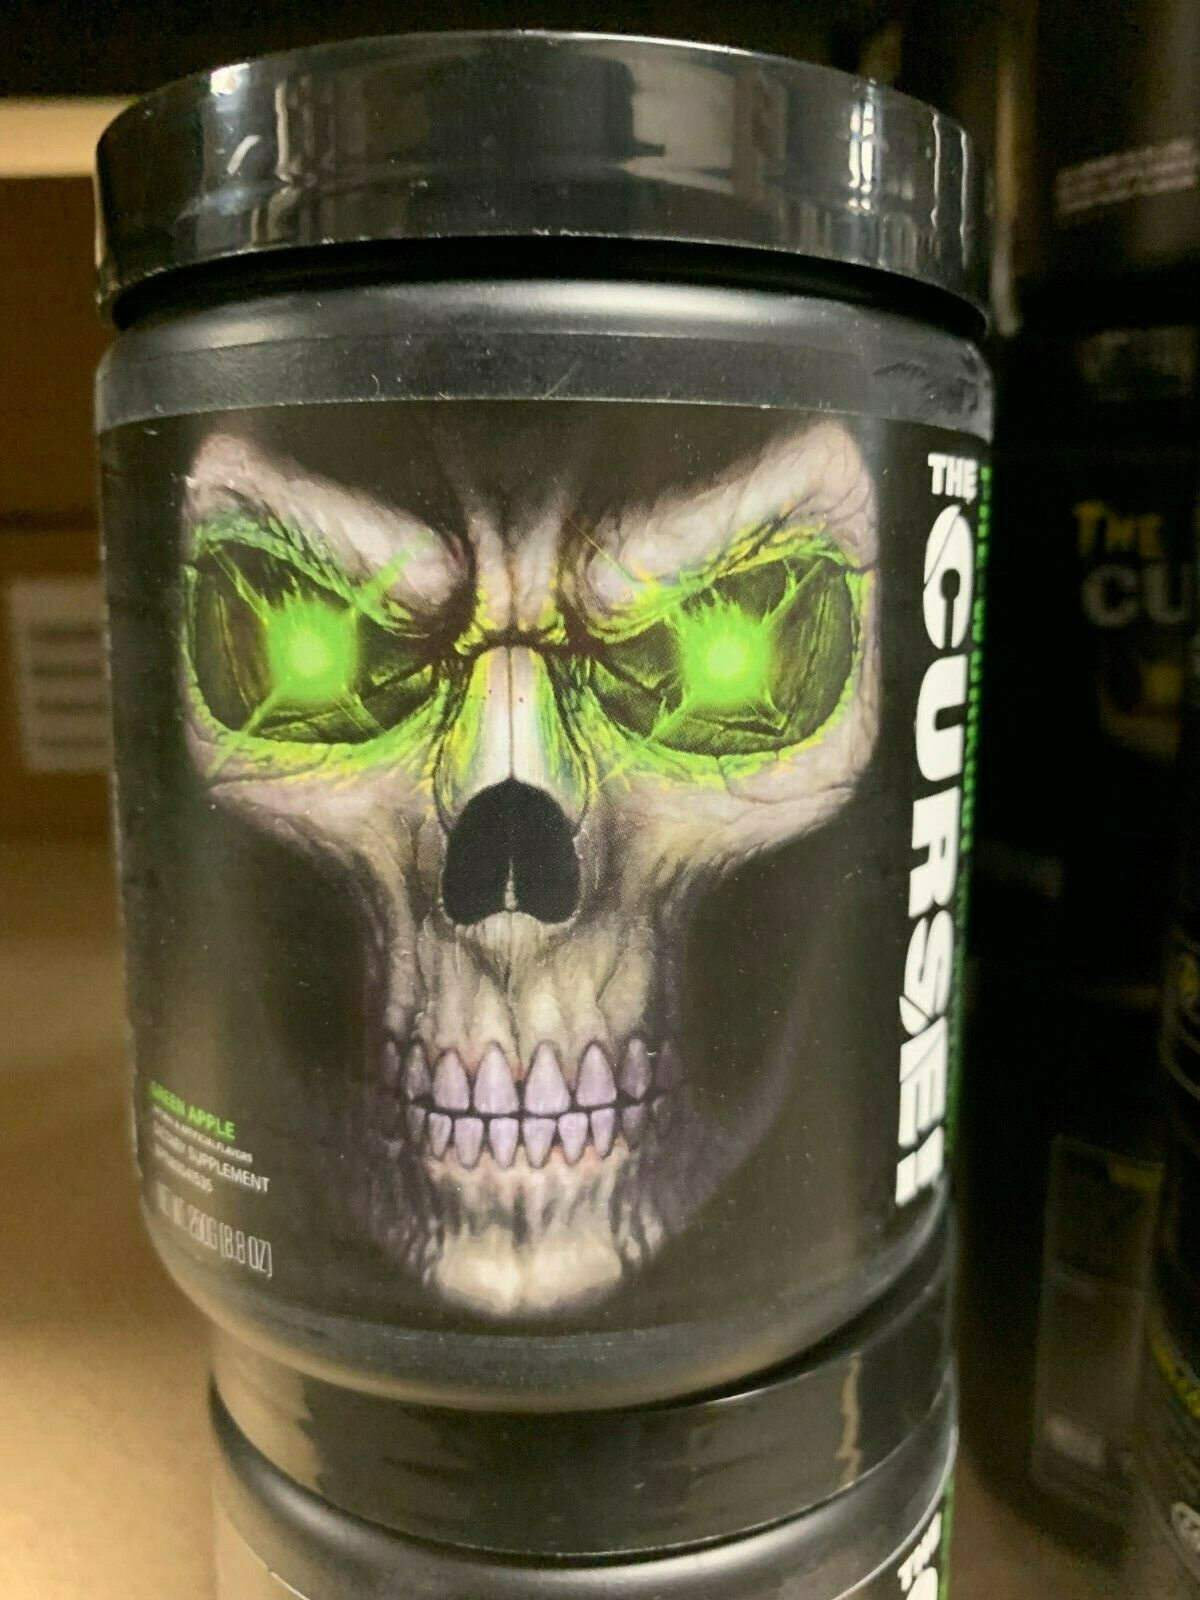 The Curse Pre Workout 50 Servings Pick Flavor Fast Free Shipping New Work Out Sealed 1 Of 6free